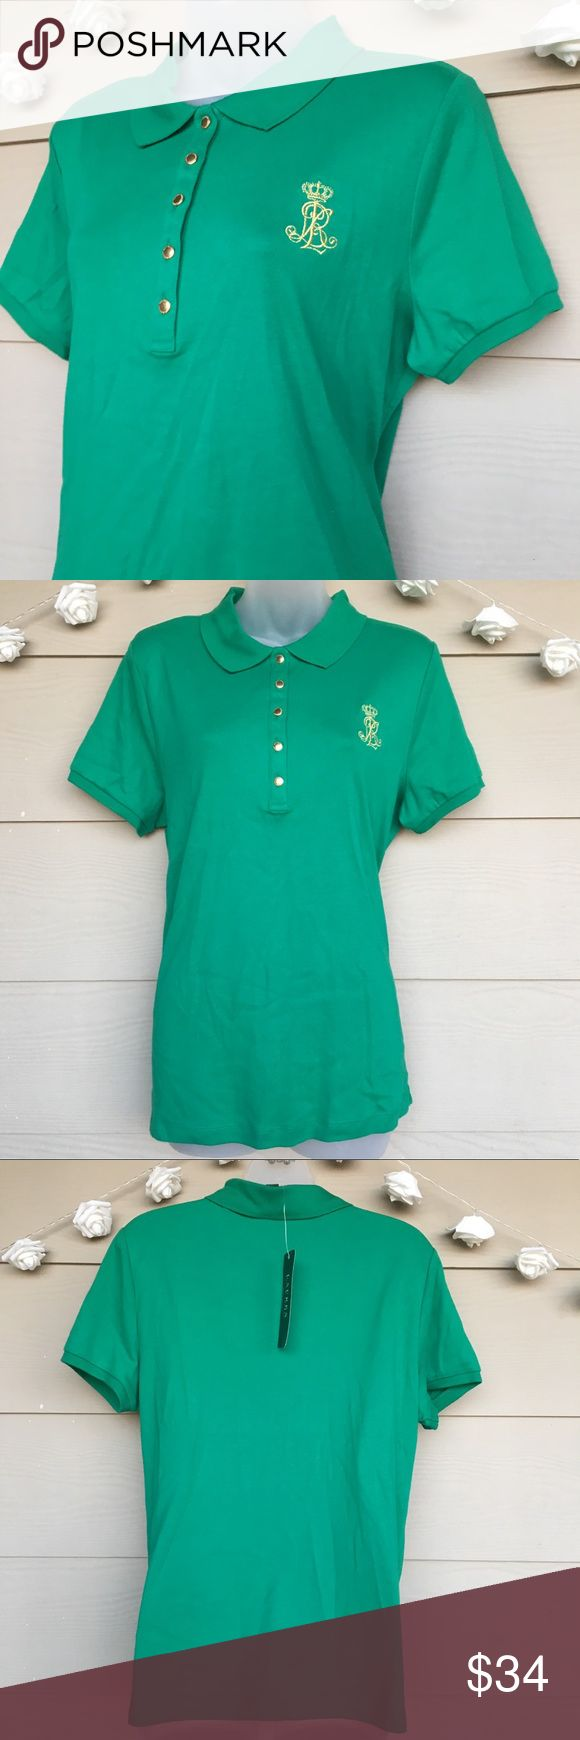 LAUREN RALPH LAUREN Green Gold Logo Polo Shirt LAUREN RALPH LAUREN LRL Women's Green With Gold Logo Polo Shirt   --Size = XL – Extra Large  --In Excellent Condition – New With Tags!  --Green polo with gold detail. Gold buttons with LRL engraved & gold emblem on front of shirt.  --100% Cotton  --Approx. Measurements laying flat:  •Armpit to armpit=21in  •Length=26in  •Sleeves=7.5in   Questions ?? -- Please ask!  All packages shipped fast with love & care!  [C] Lauren Ralph Lauren Tops